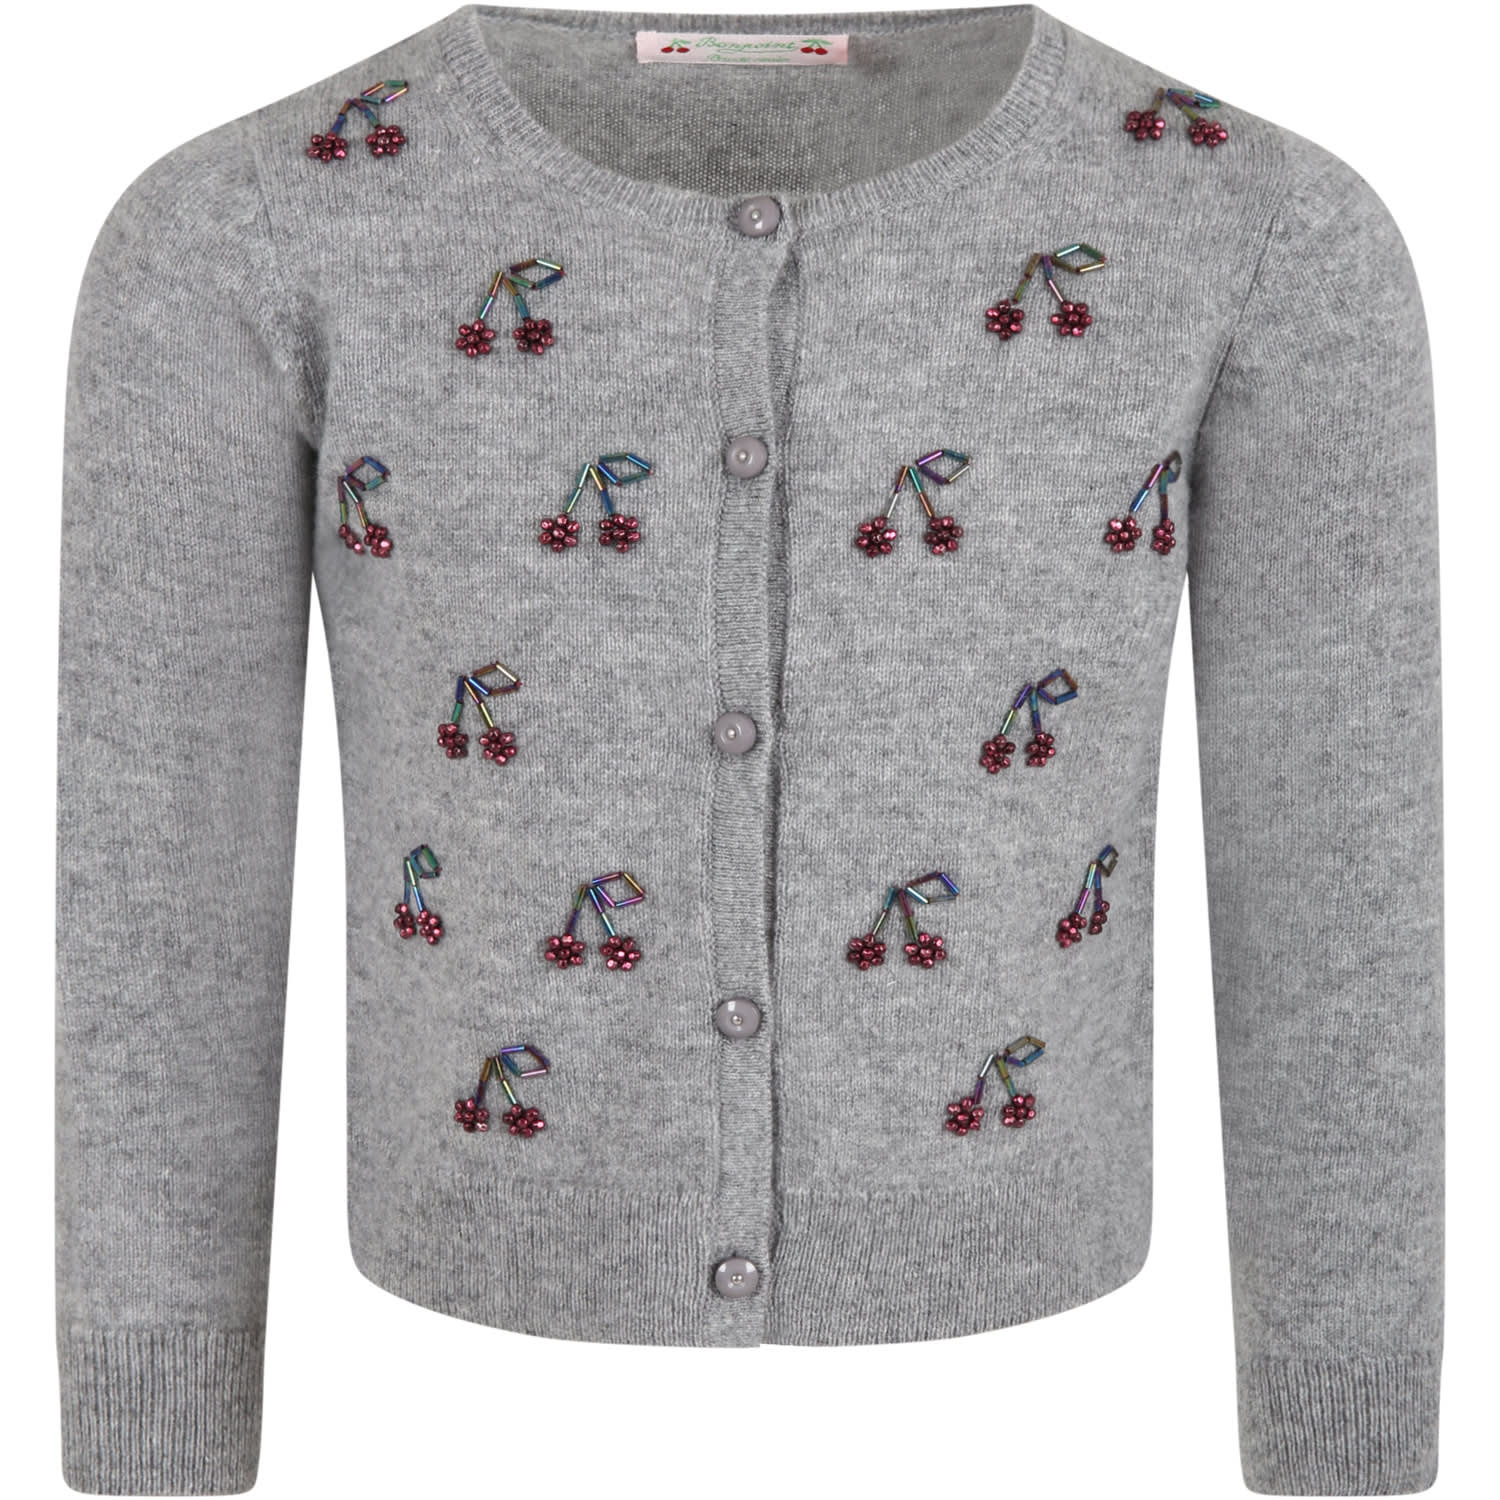 Gray Cardigan For Girl With Cherries